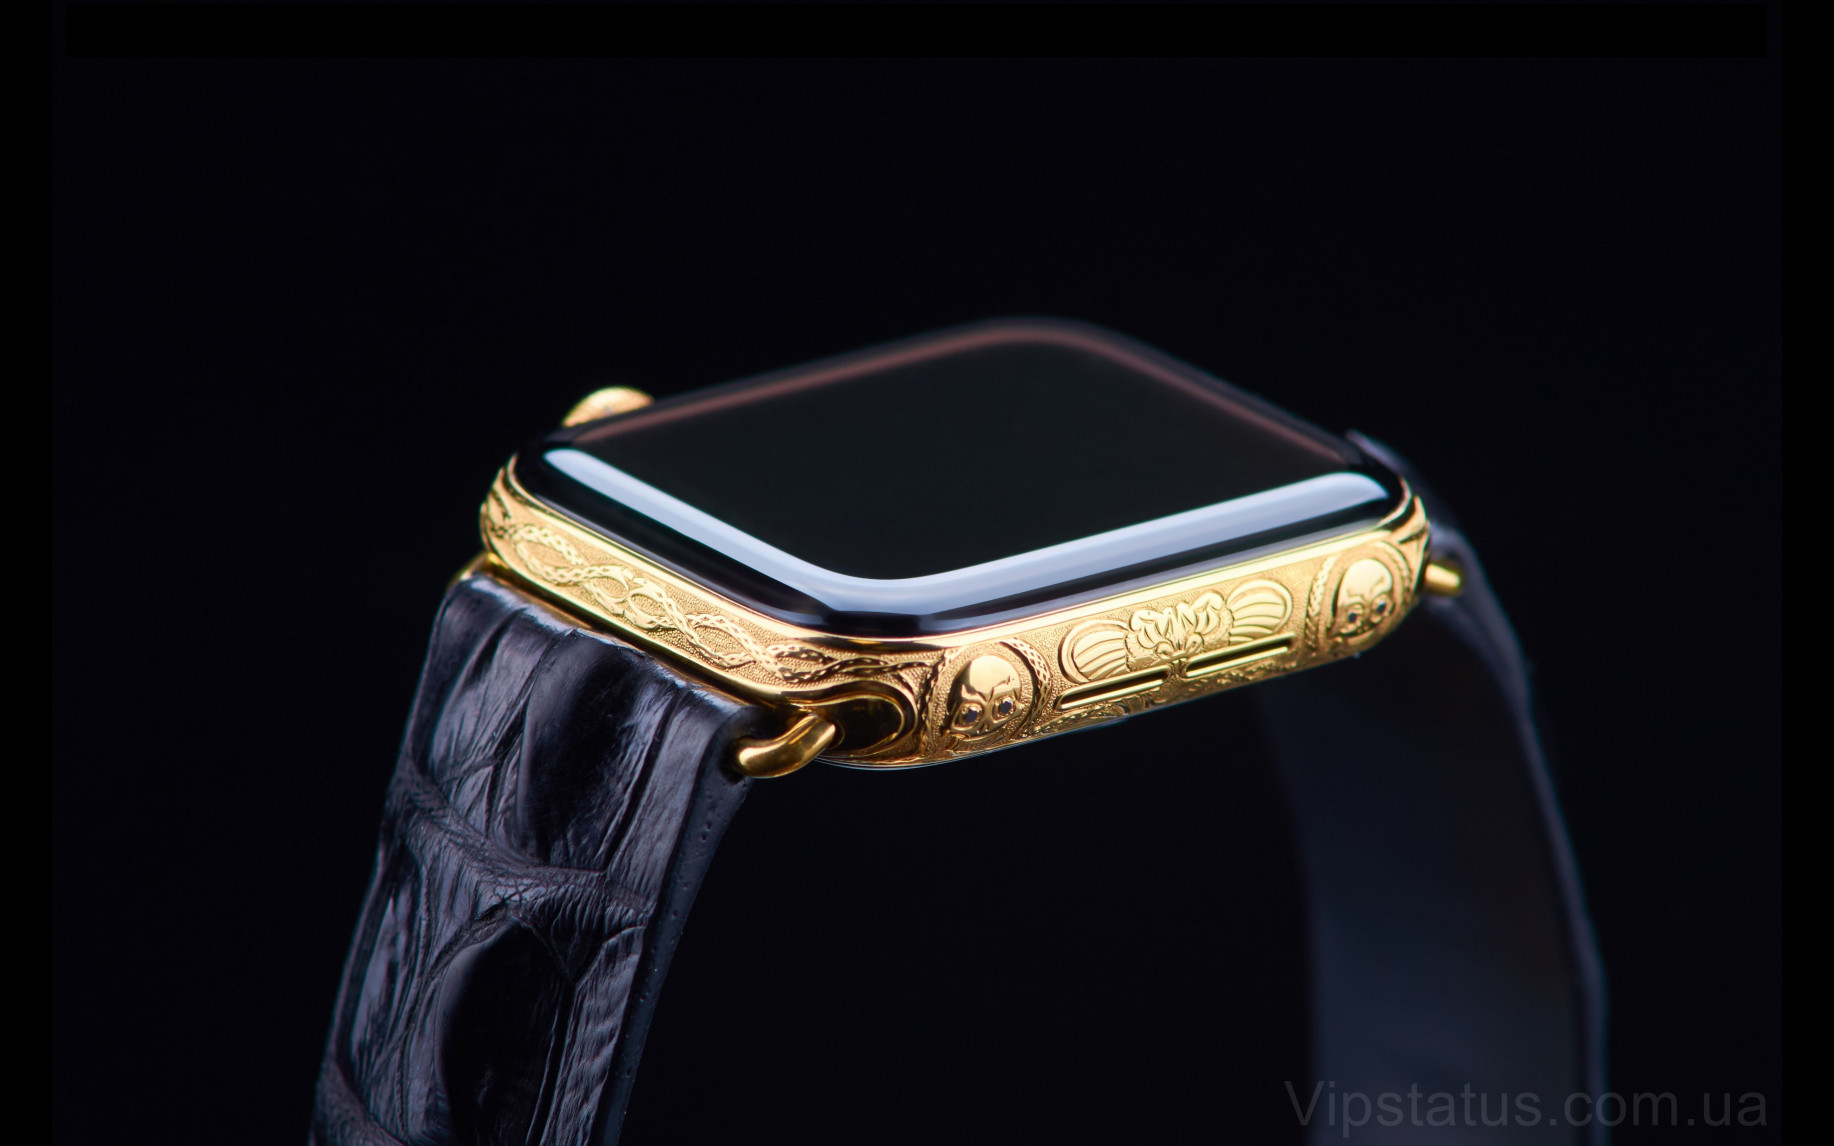 Элитный Skull 666 Gold Apple Watch 5 Skull 666 Gold Apple Watch 5 Sapphire изображение 5